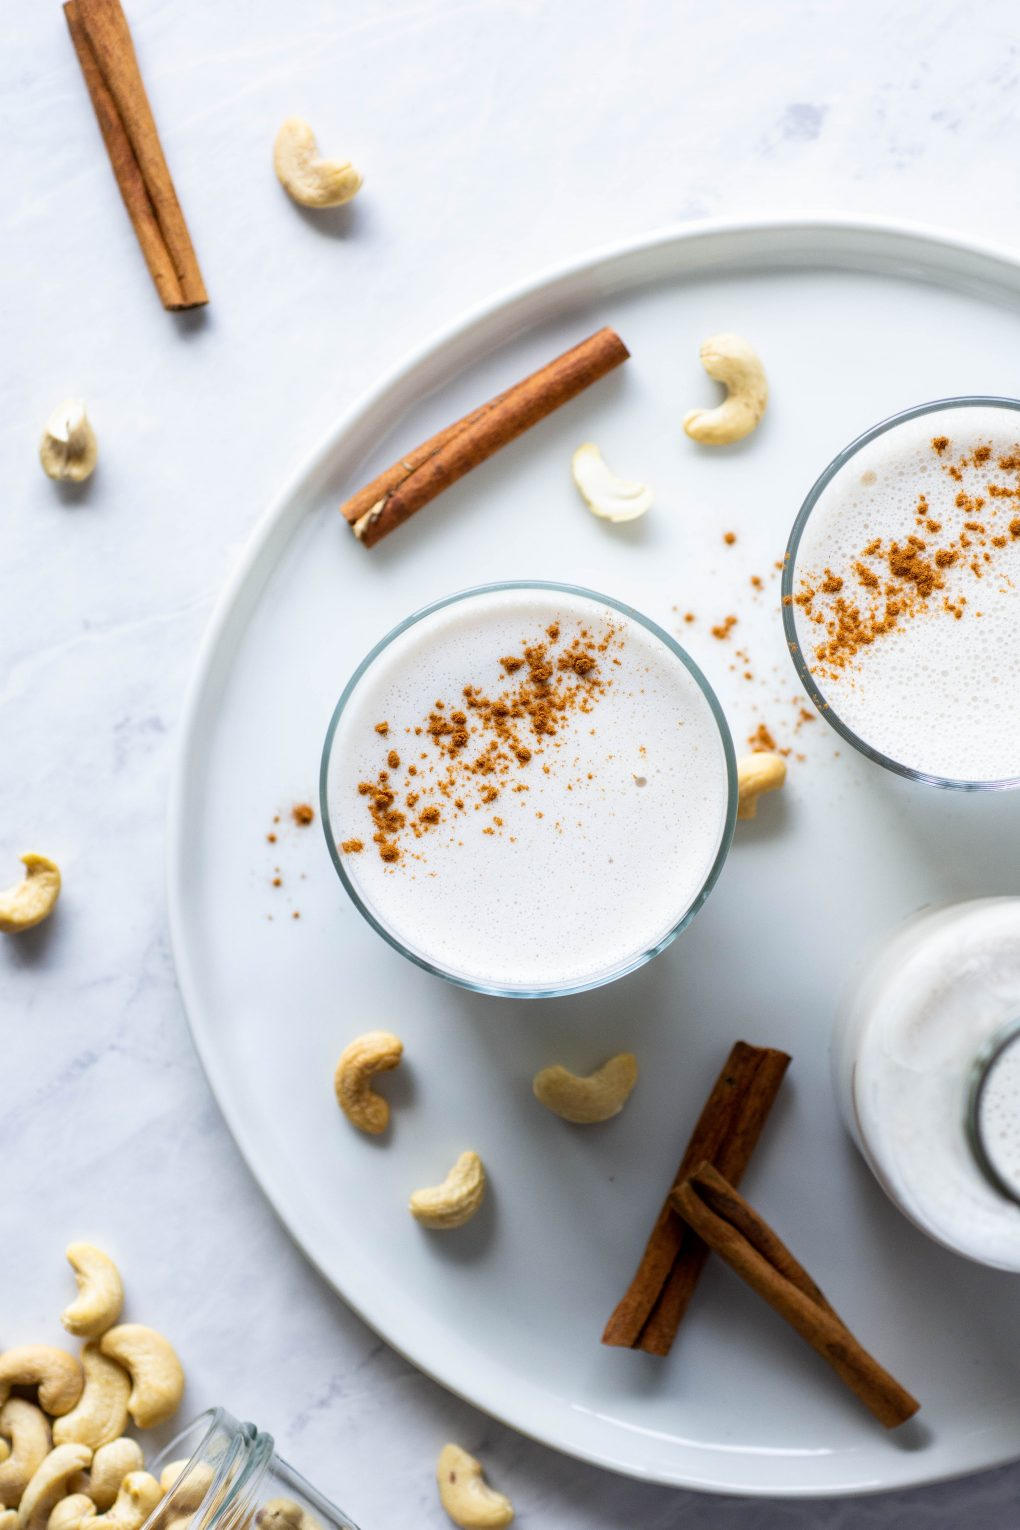 Overhead shot of two side by side glasses of cashew milk sprinkled with cinnamon on white plate on a marble background next to a cinnamon stick and some scattered cashews